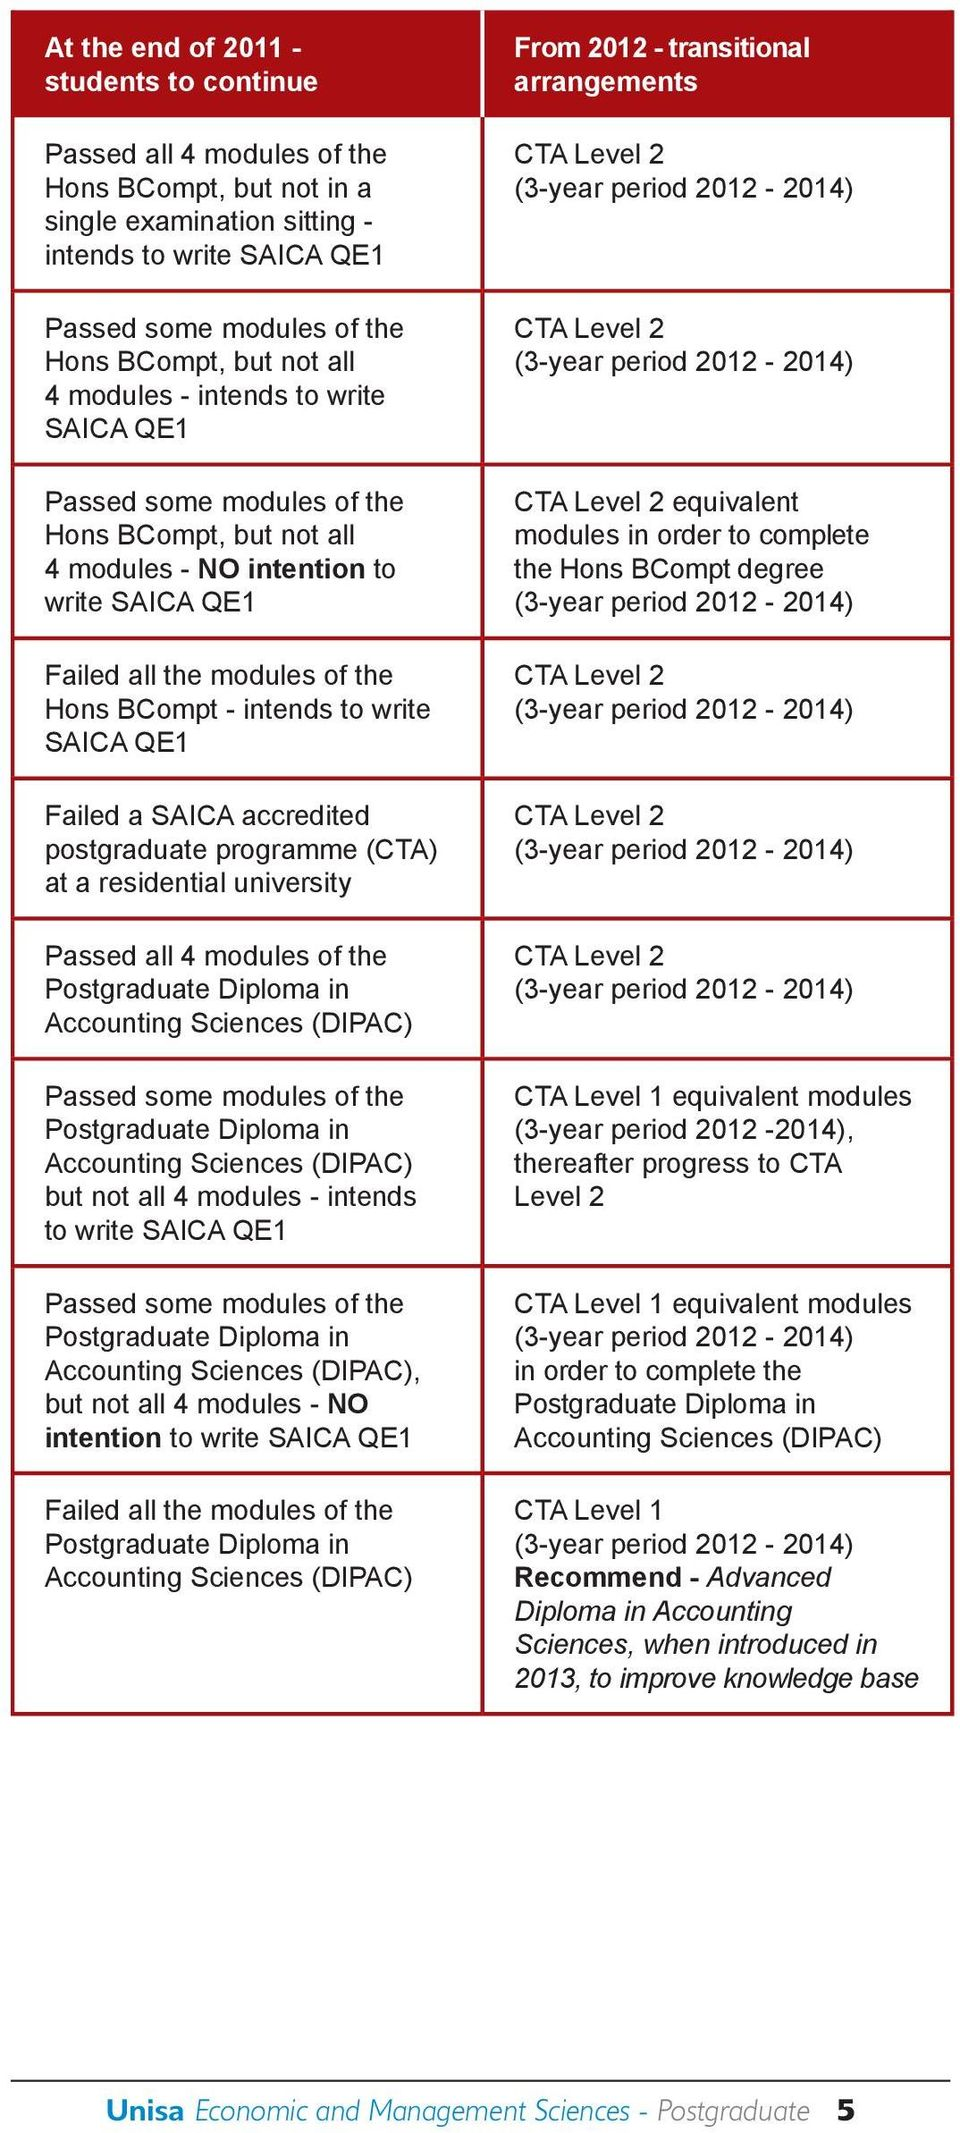 SAICA QE1 Failed a SAICA accredited postgraduate programme (CTA) at a residential university Passed all 4 modules of the (DIPAC) Passed some modules of the (DIPAC) but not all 4 modules - intends to